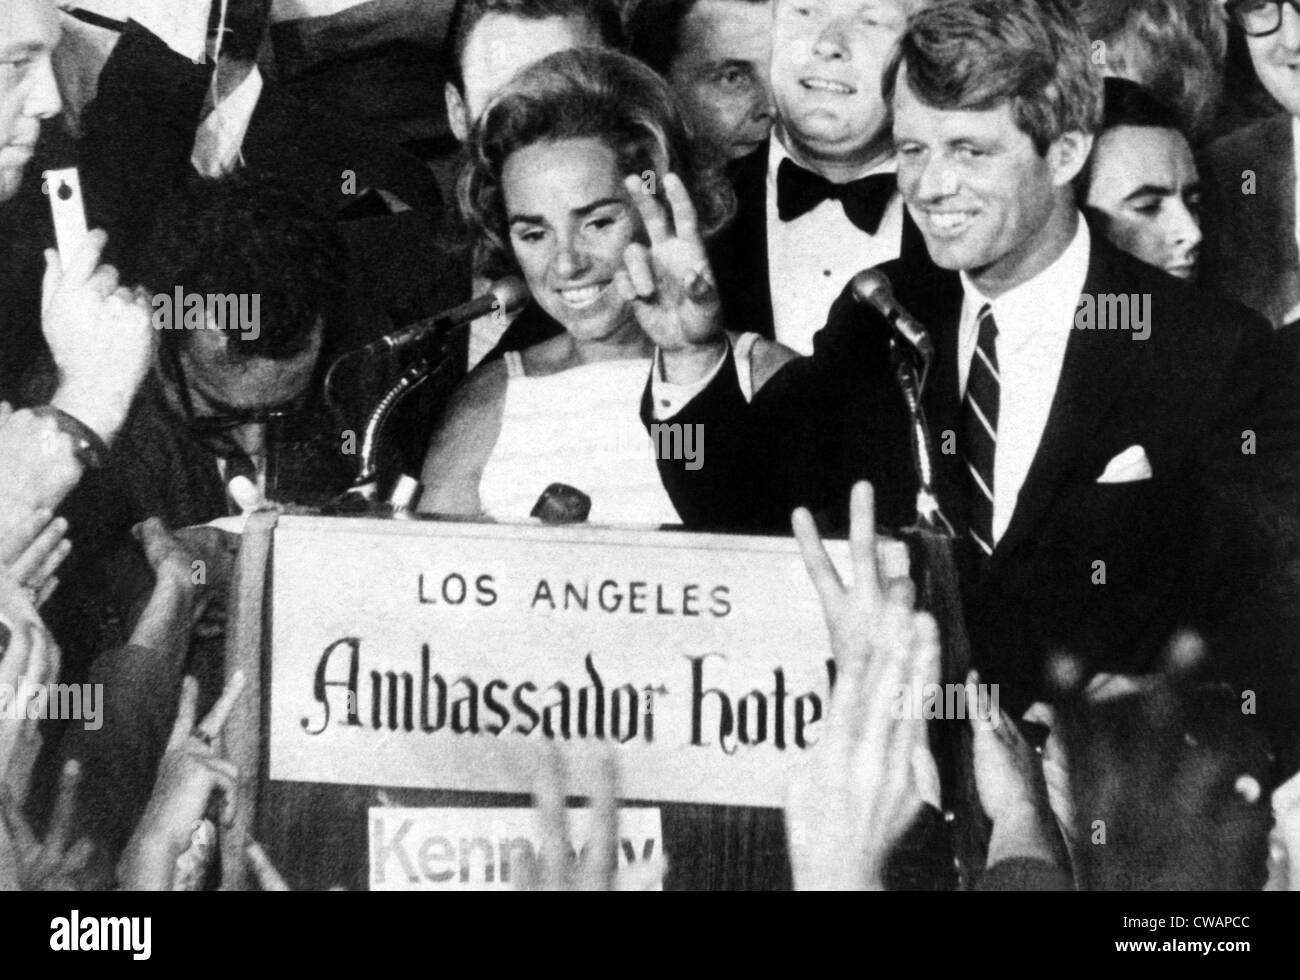 Ethel Kennedy, Senator Robert F. Kennedy, at the Ambassador Hotel just before he was assassinated, Los Angeles, - Stock Image